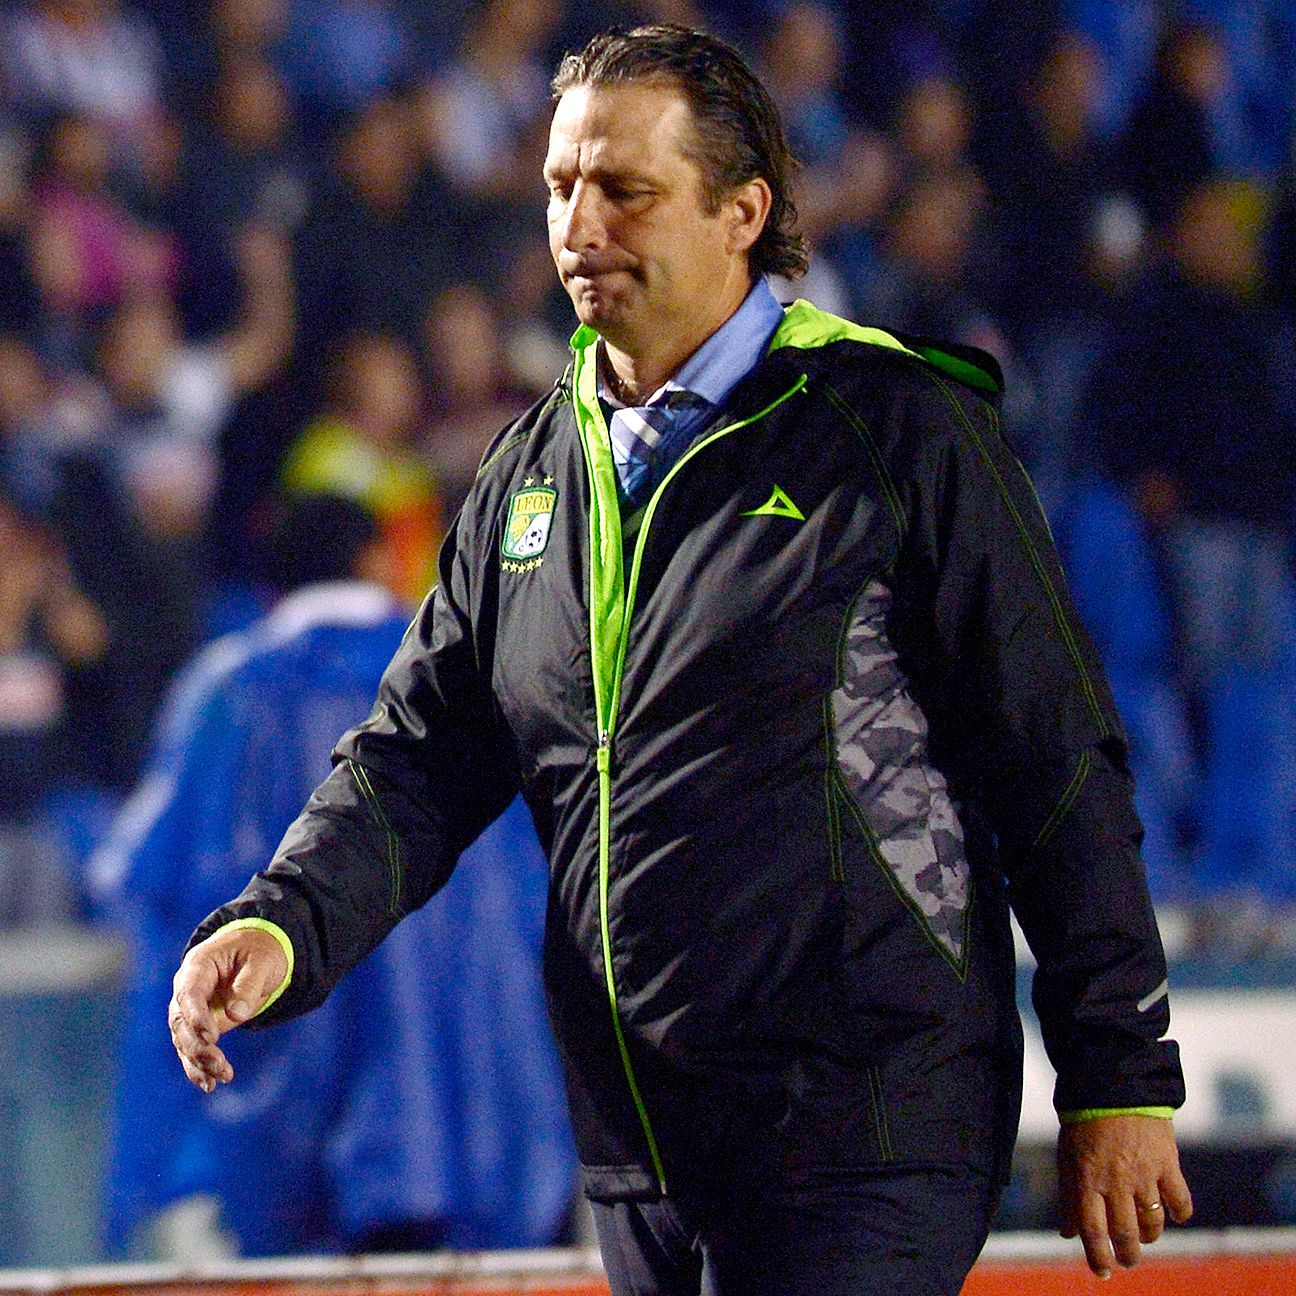 There is widespread speculation that Juan Antonio Pizzi will leave Leon for the Chilean national team job.